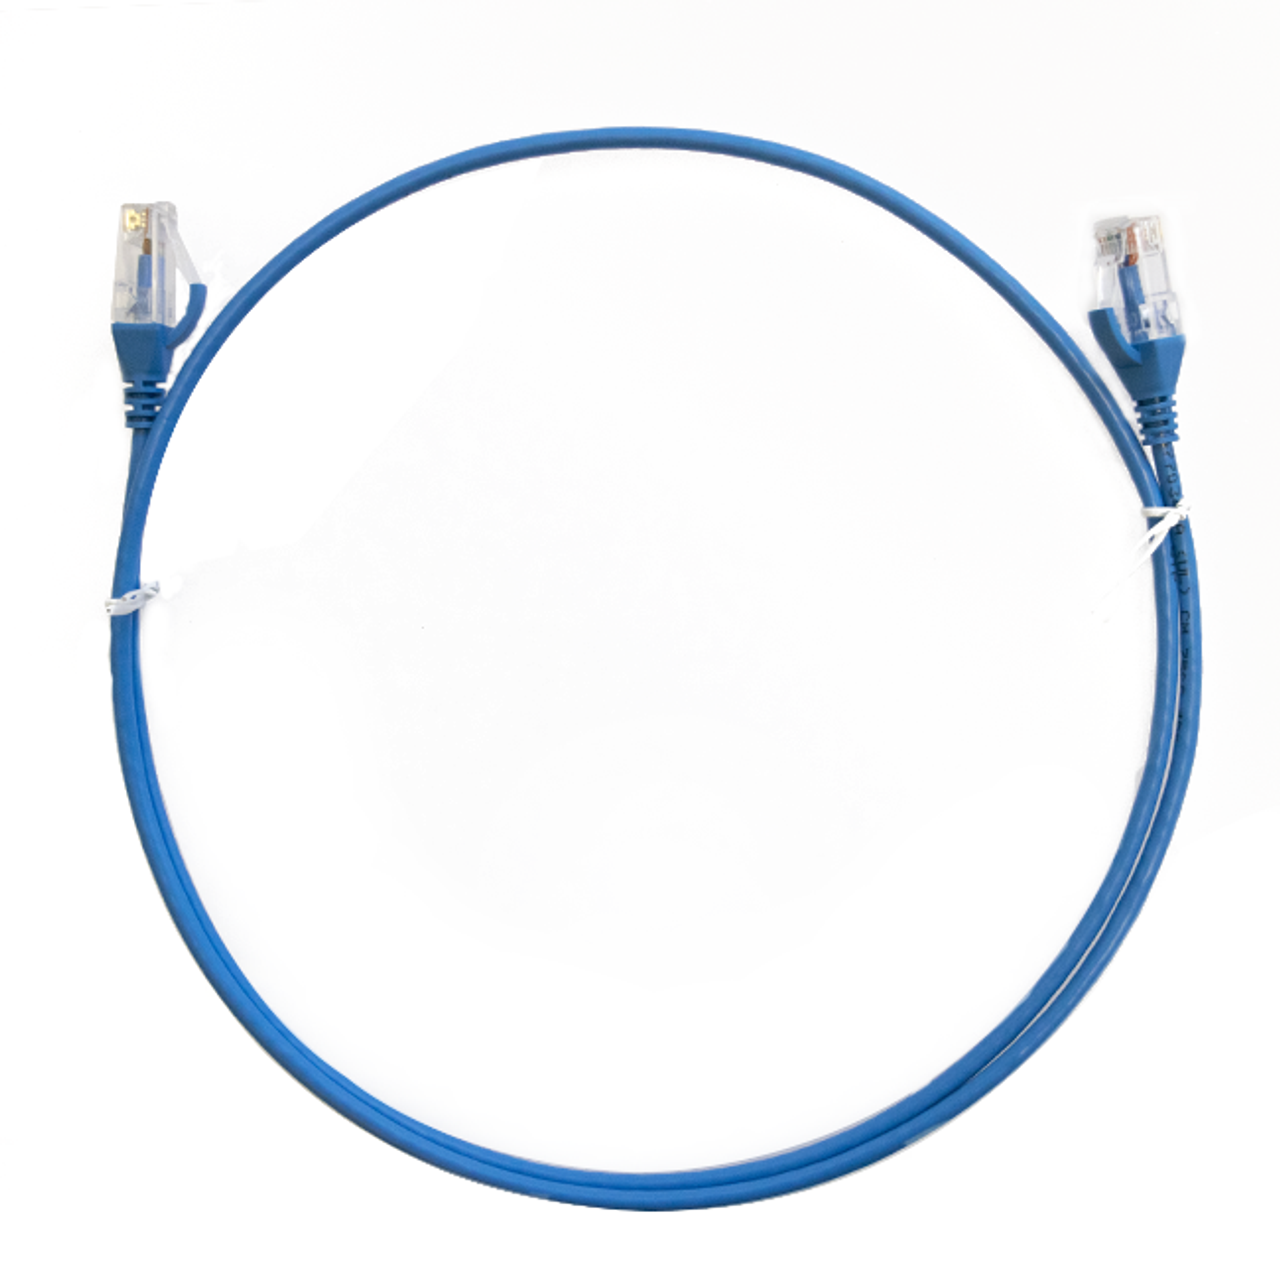 Image for 0.15m Cat 6 RJ45 RJ45 Ultra Thin LSZH Network Cables  : Blue CX Computer Superstore